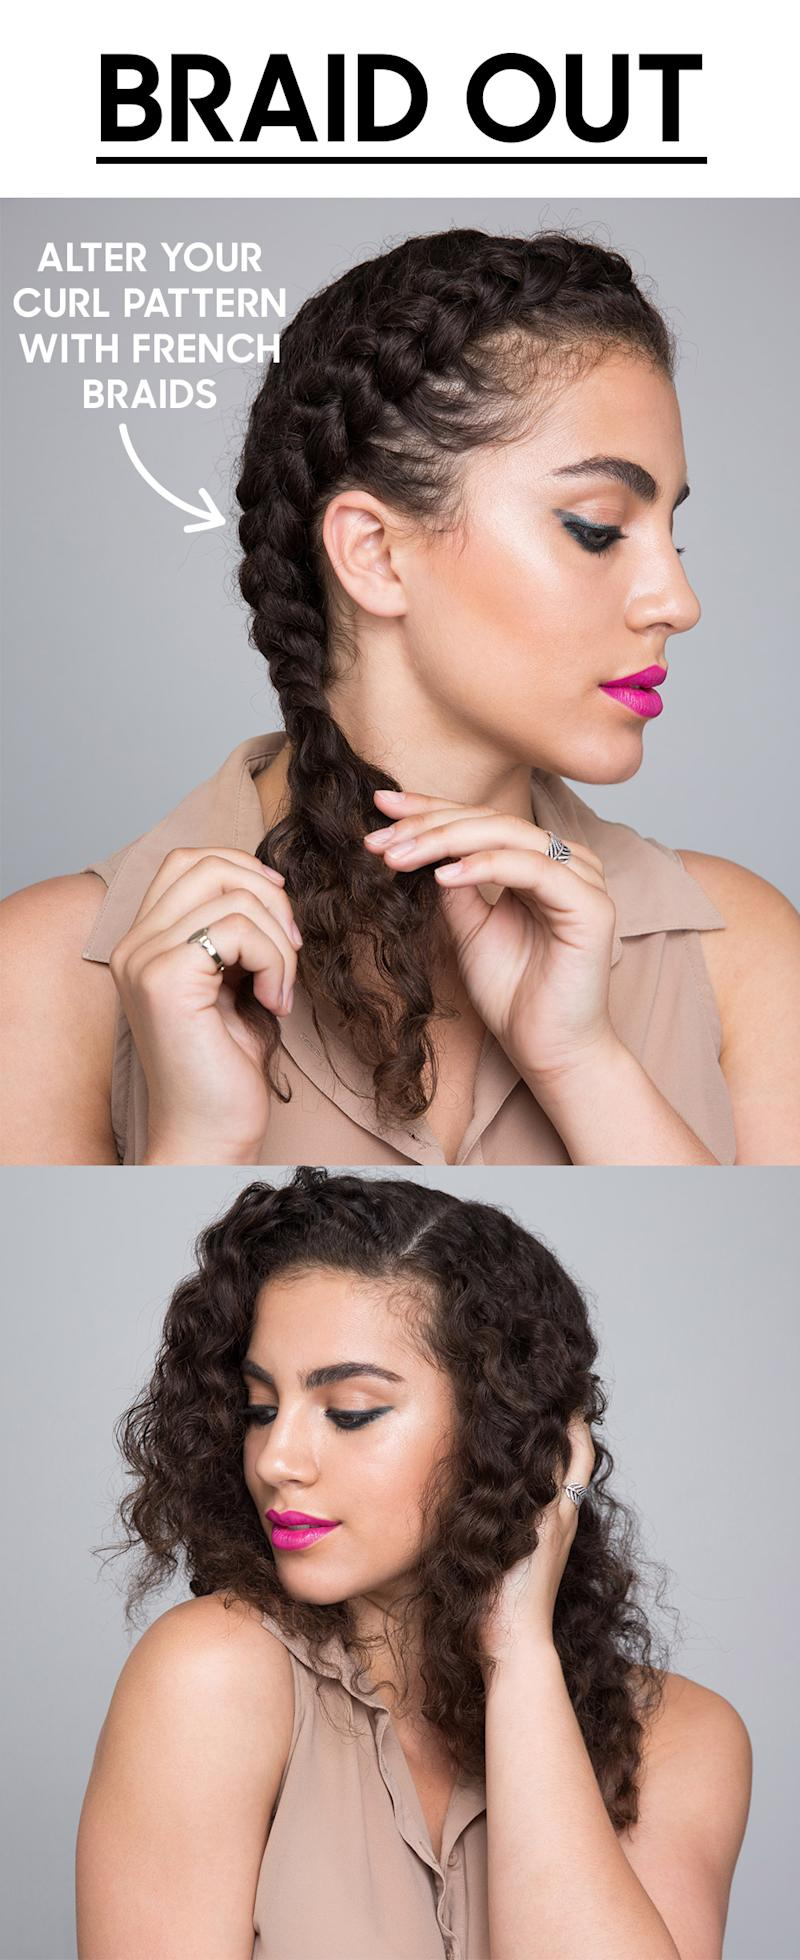 17 Genius Curly Hair Tips and Tricks